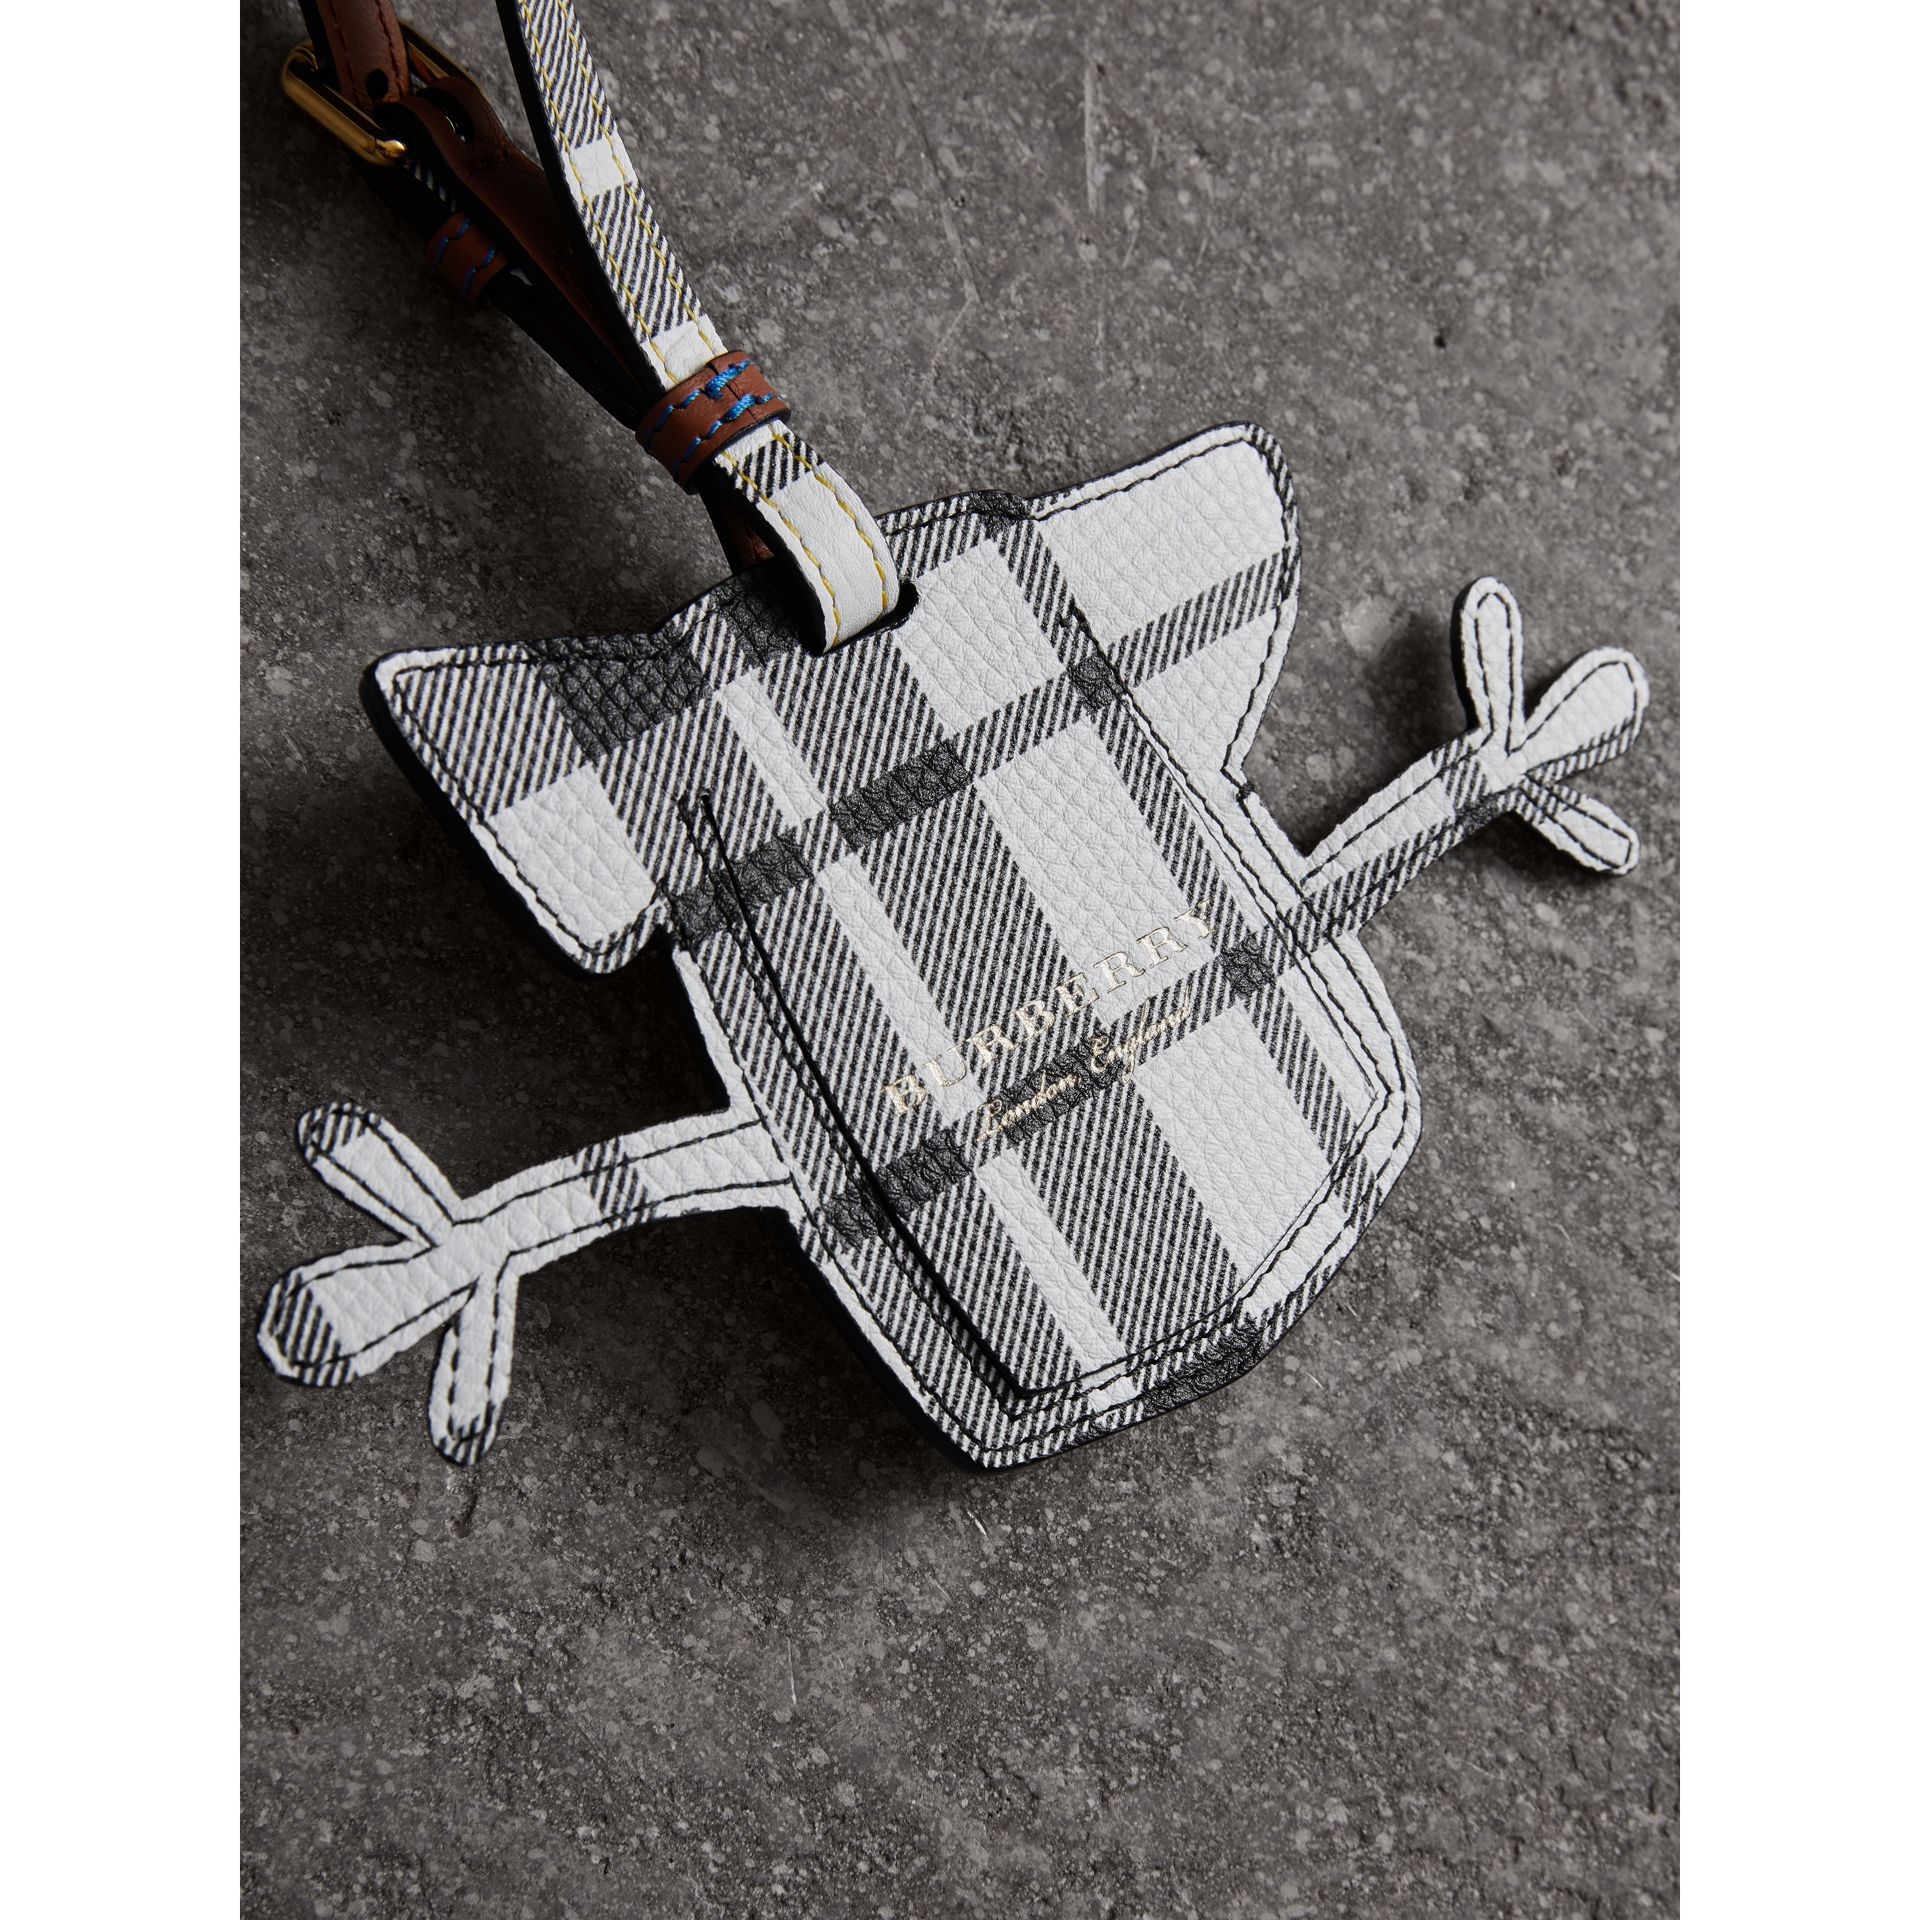 Creature Appliqué Leather Trim Luggage Tag in Racing Green | Burberry United Kingdom - gallery image 3